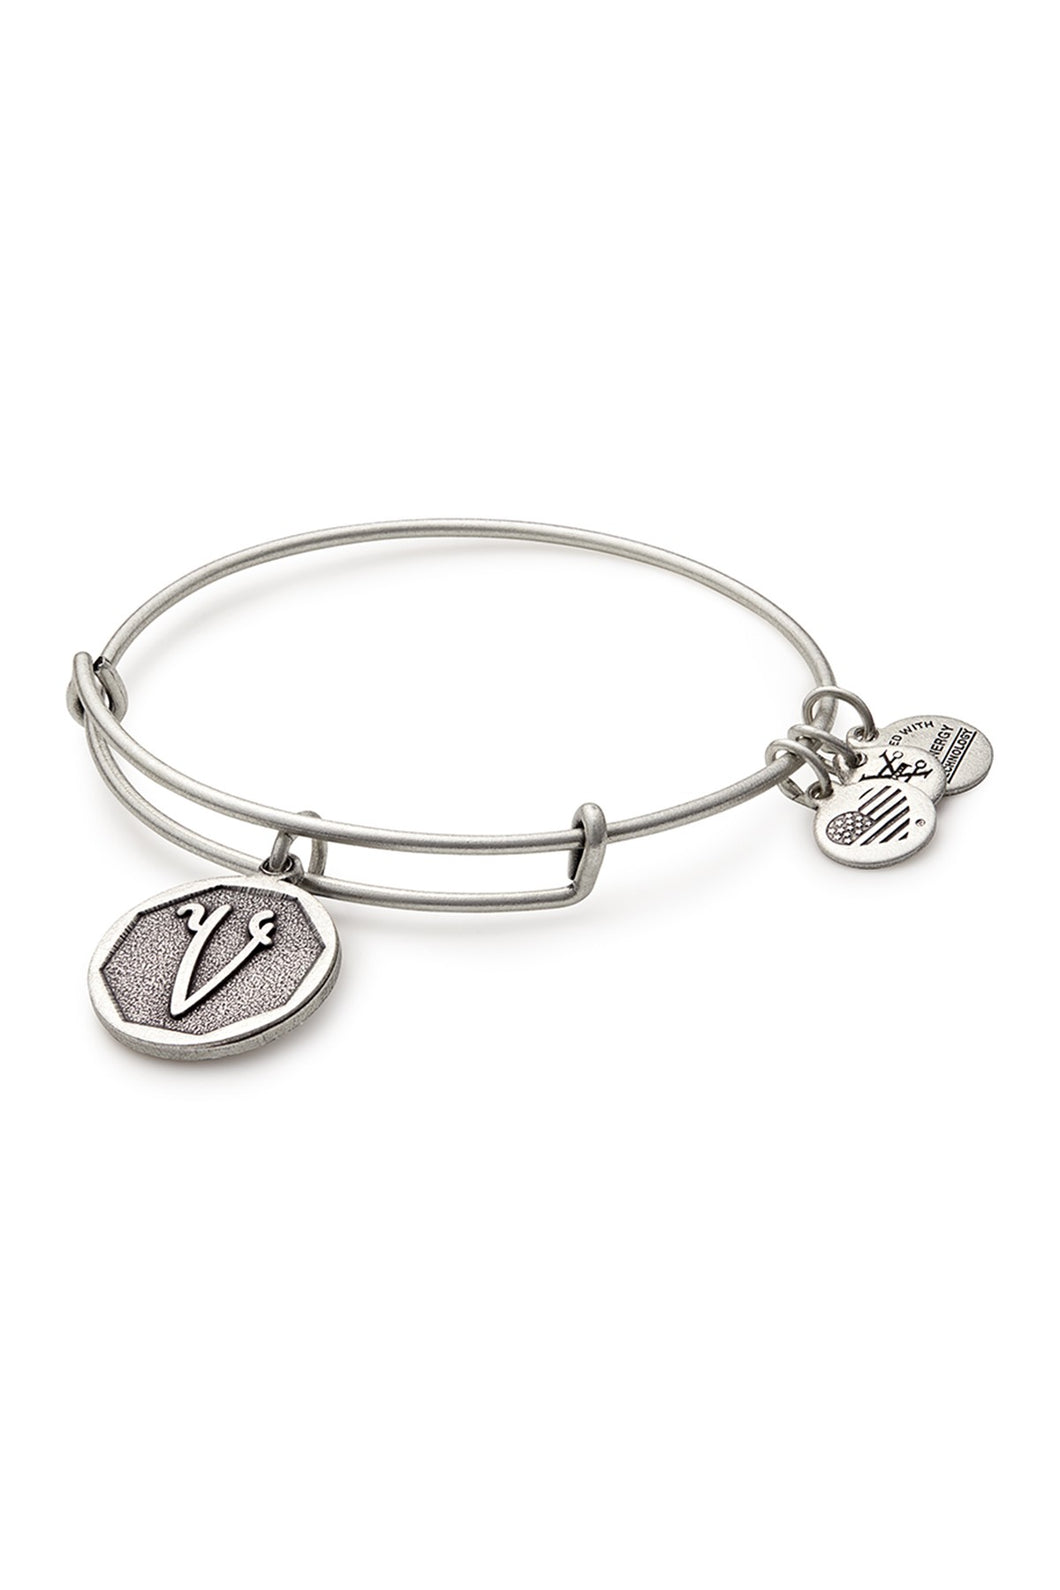 Alex and Ani Initial V Bangle Silver